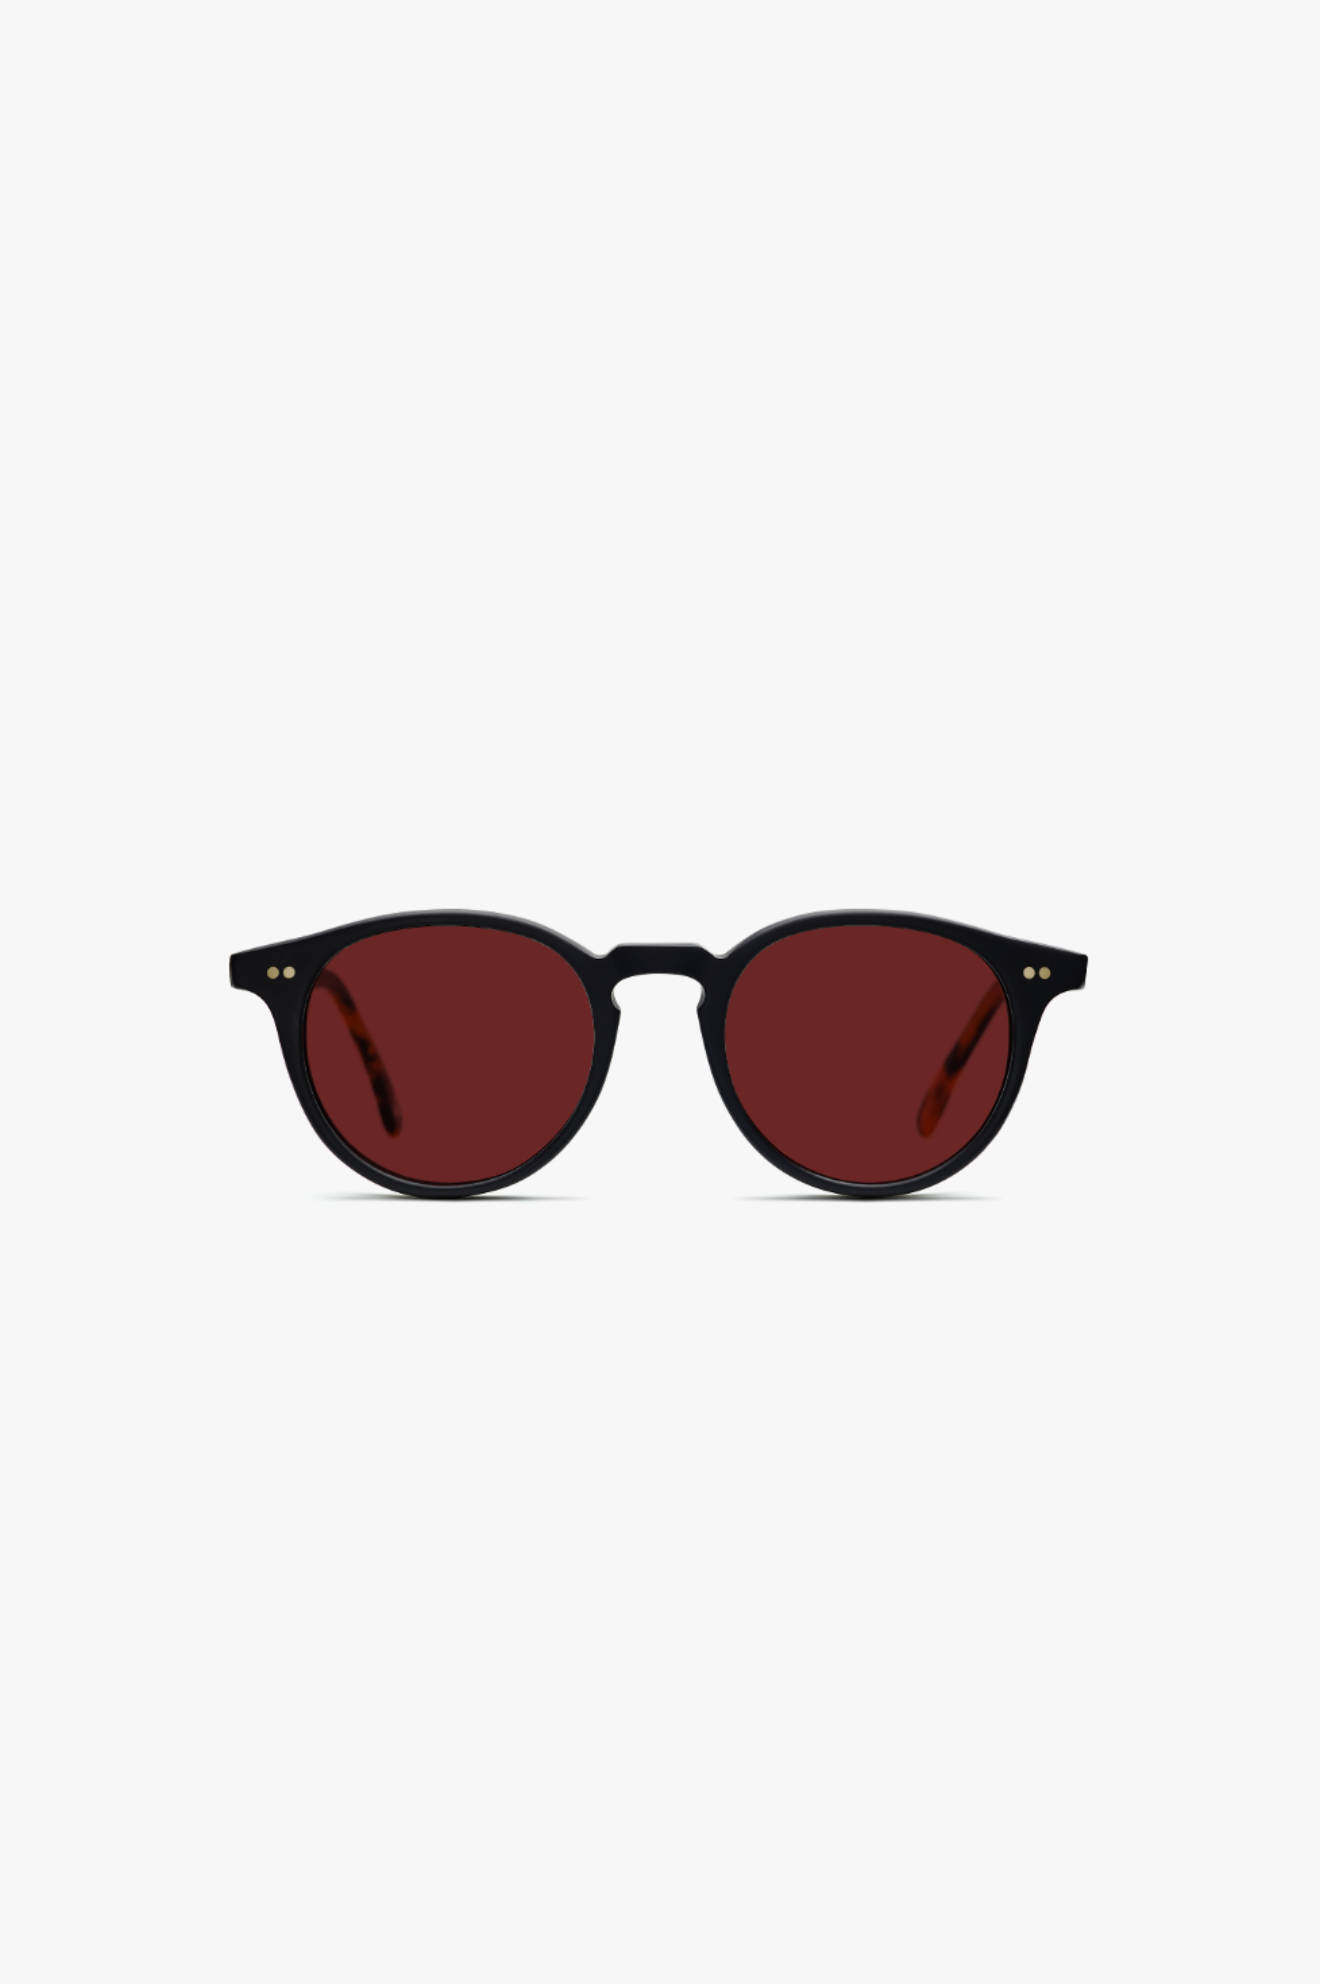 Cool Kid Sunglasses BTC Matte